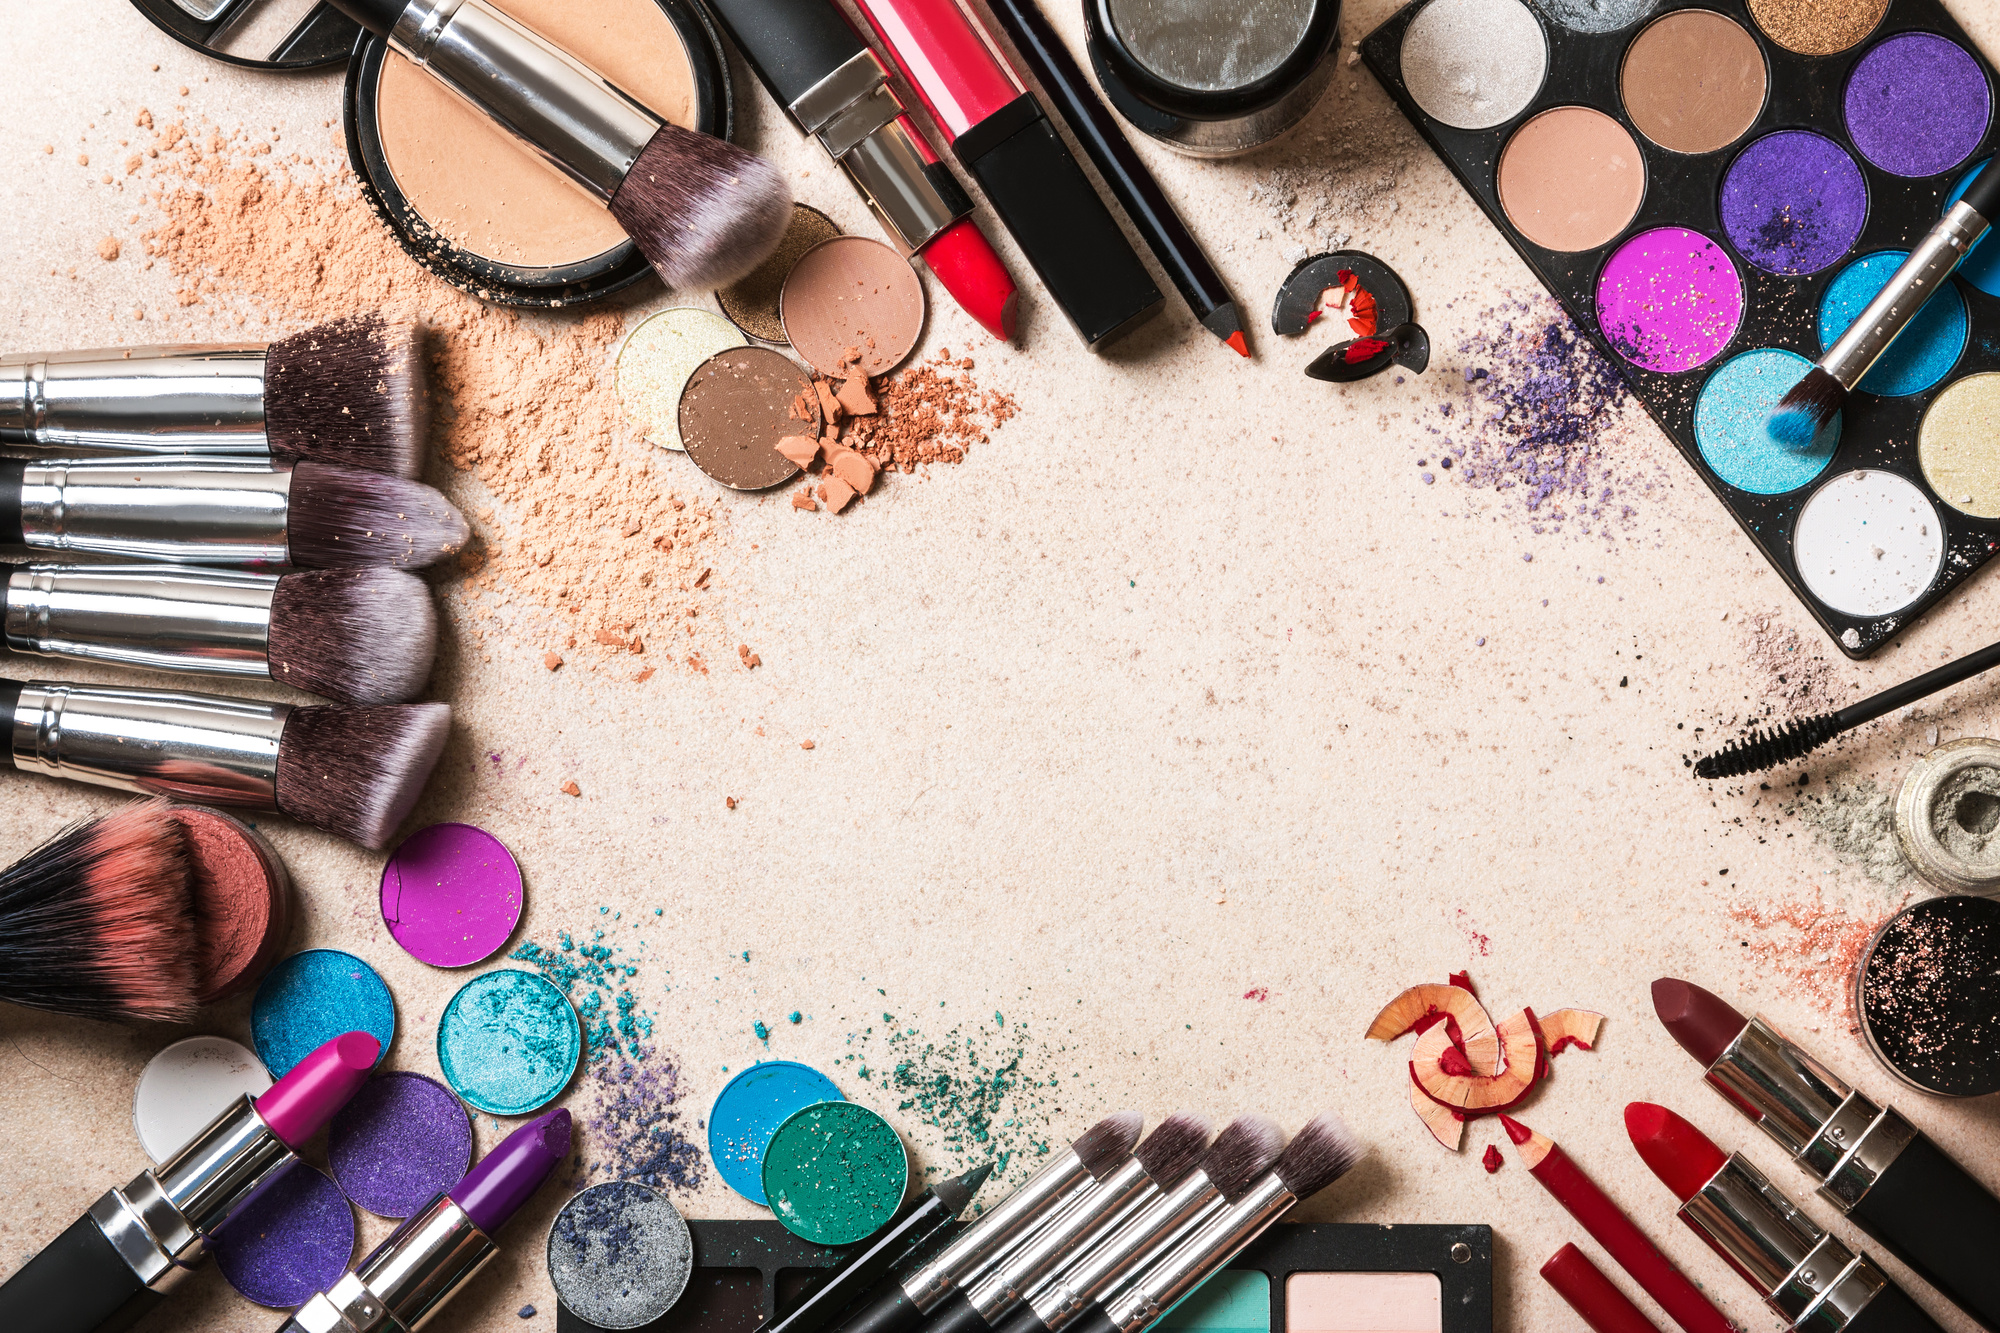 Starting a Cosmetics Business